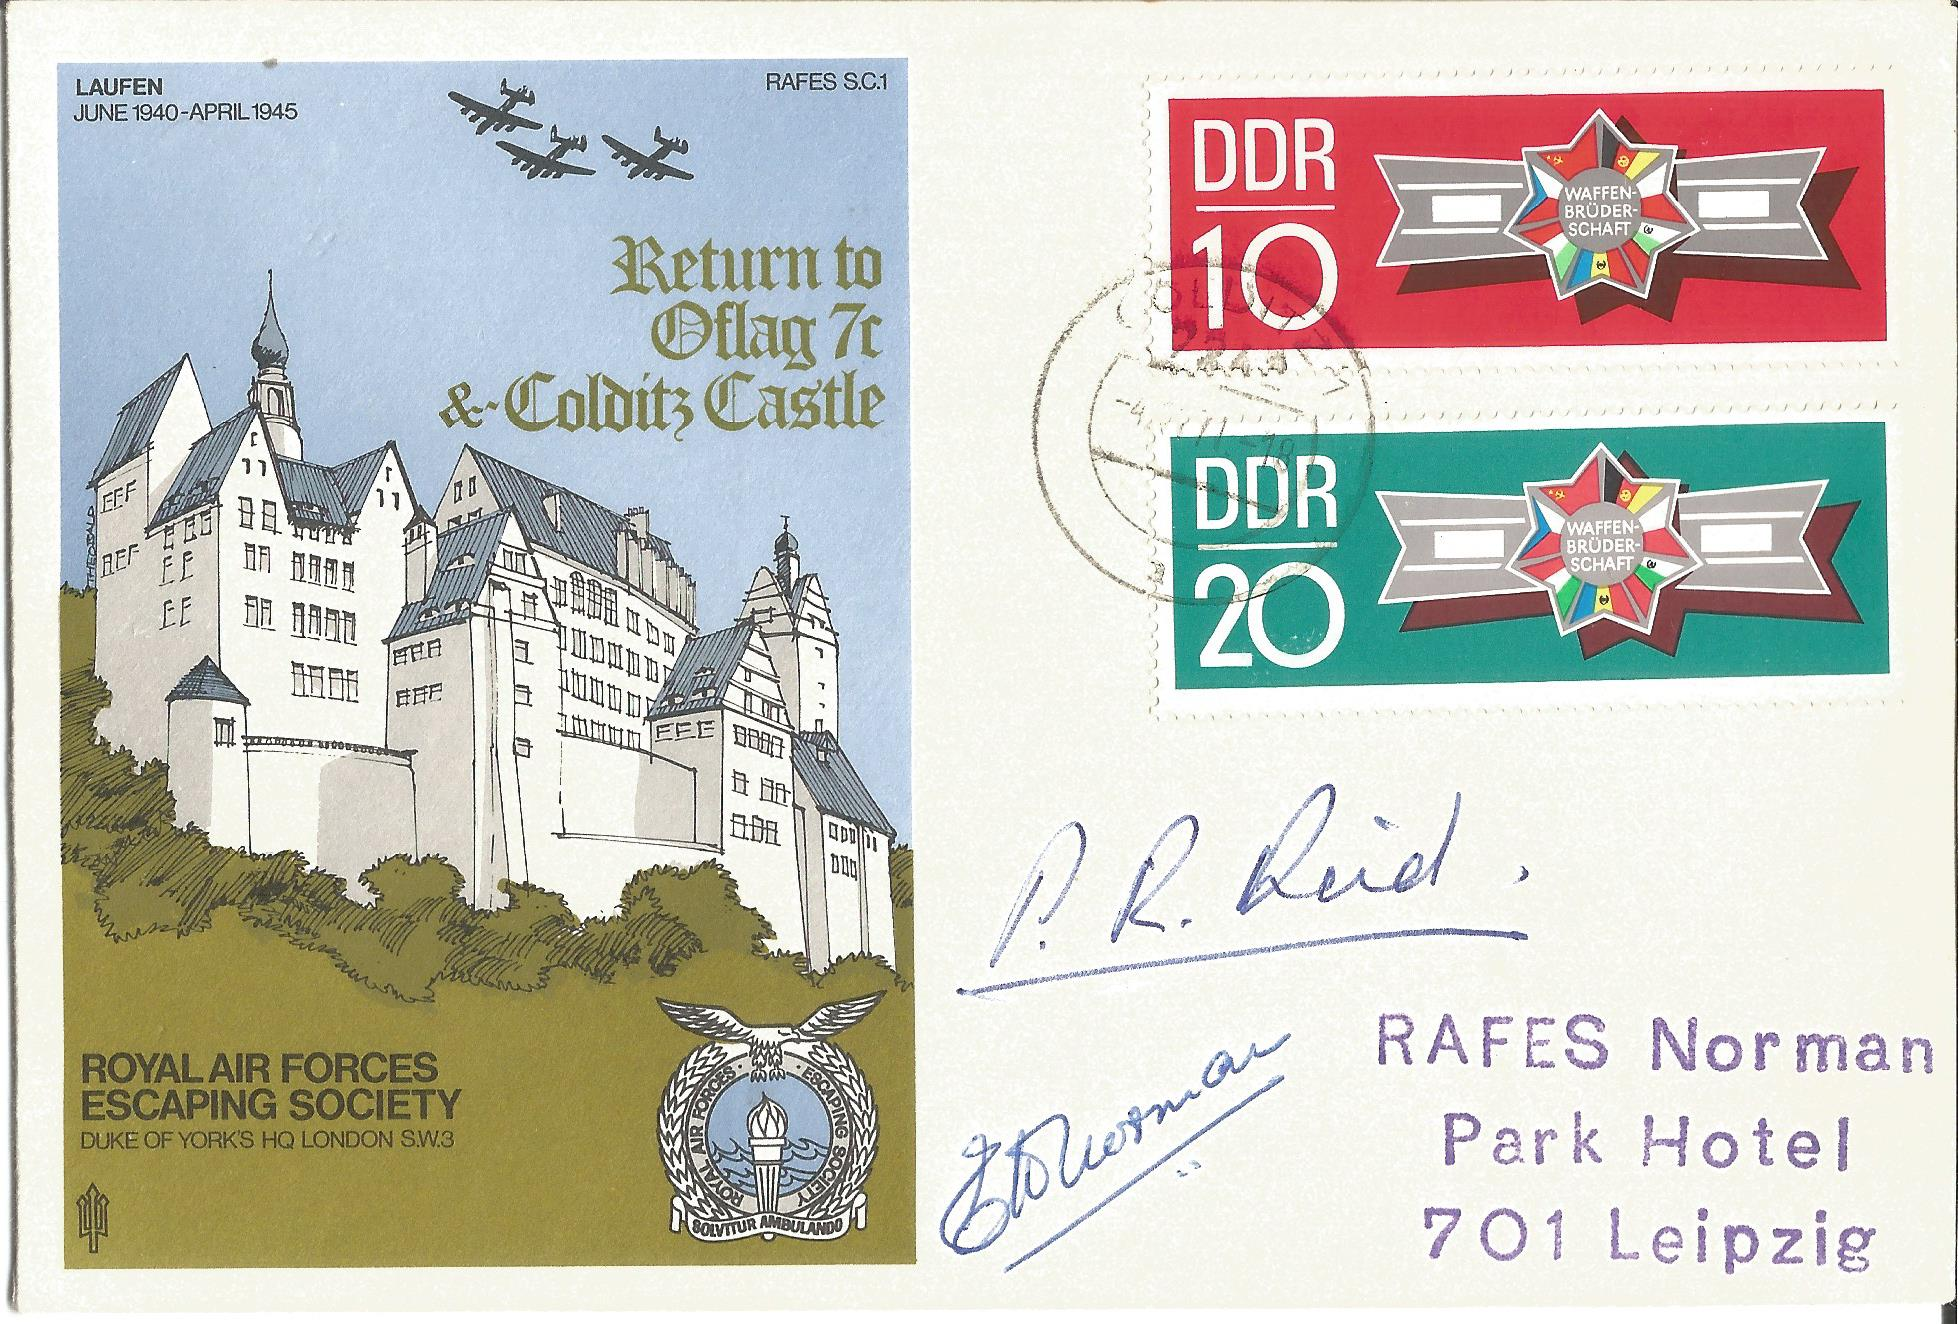 Lot 69 - Pat Reid rare 2 DDR stamp variety signed Escape from Colditz Castle RAF WW2 cover RAFES SC1. Good